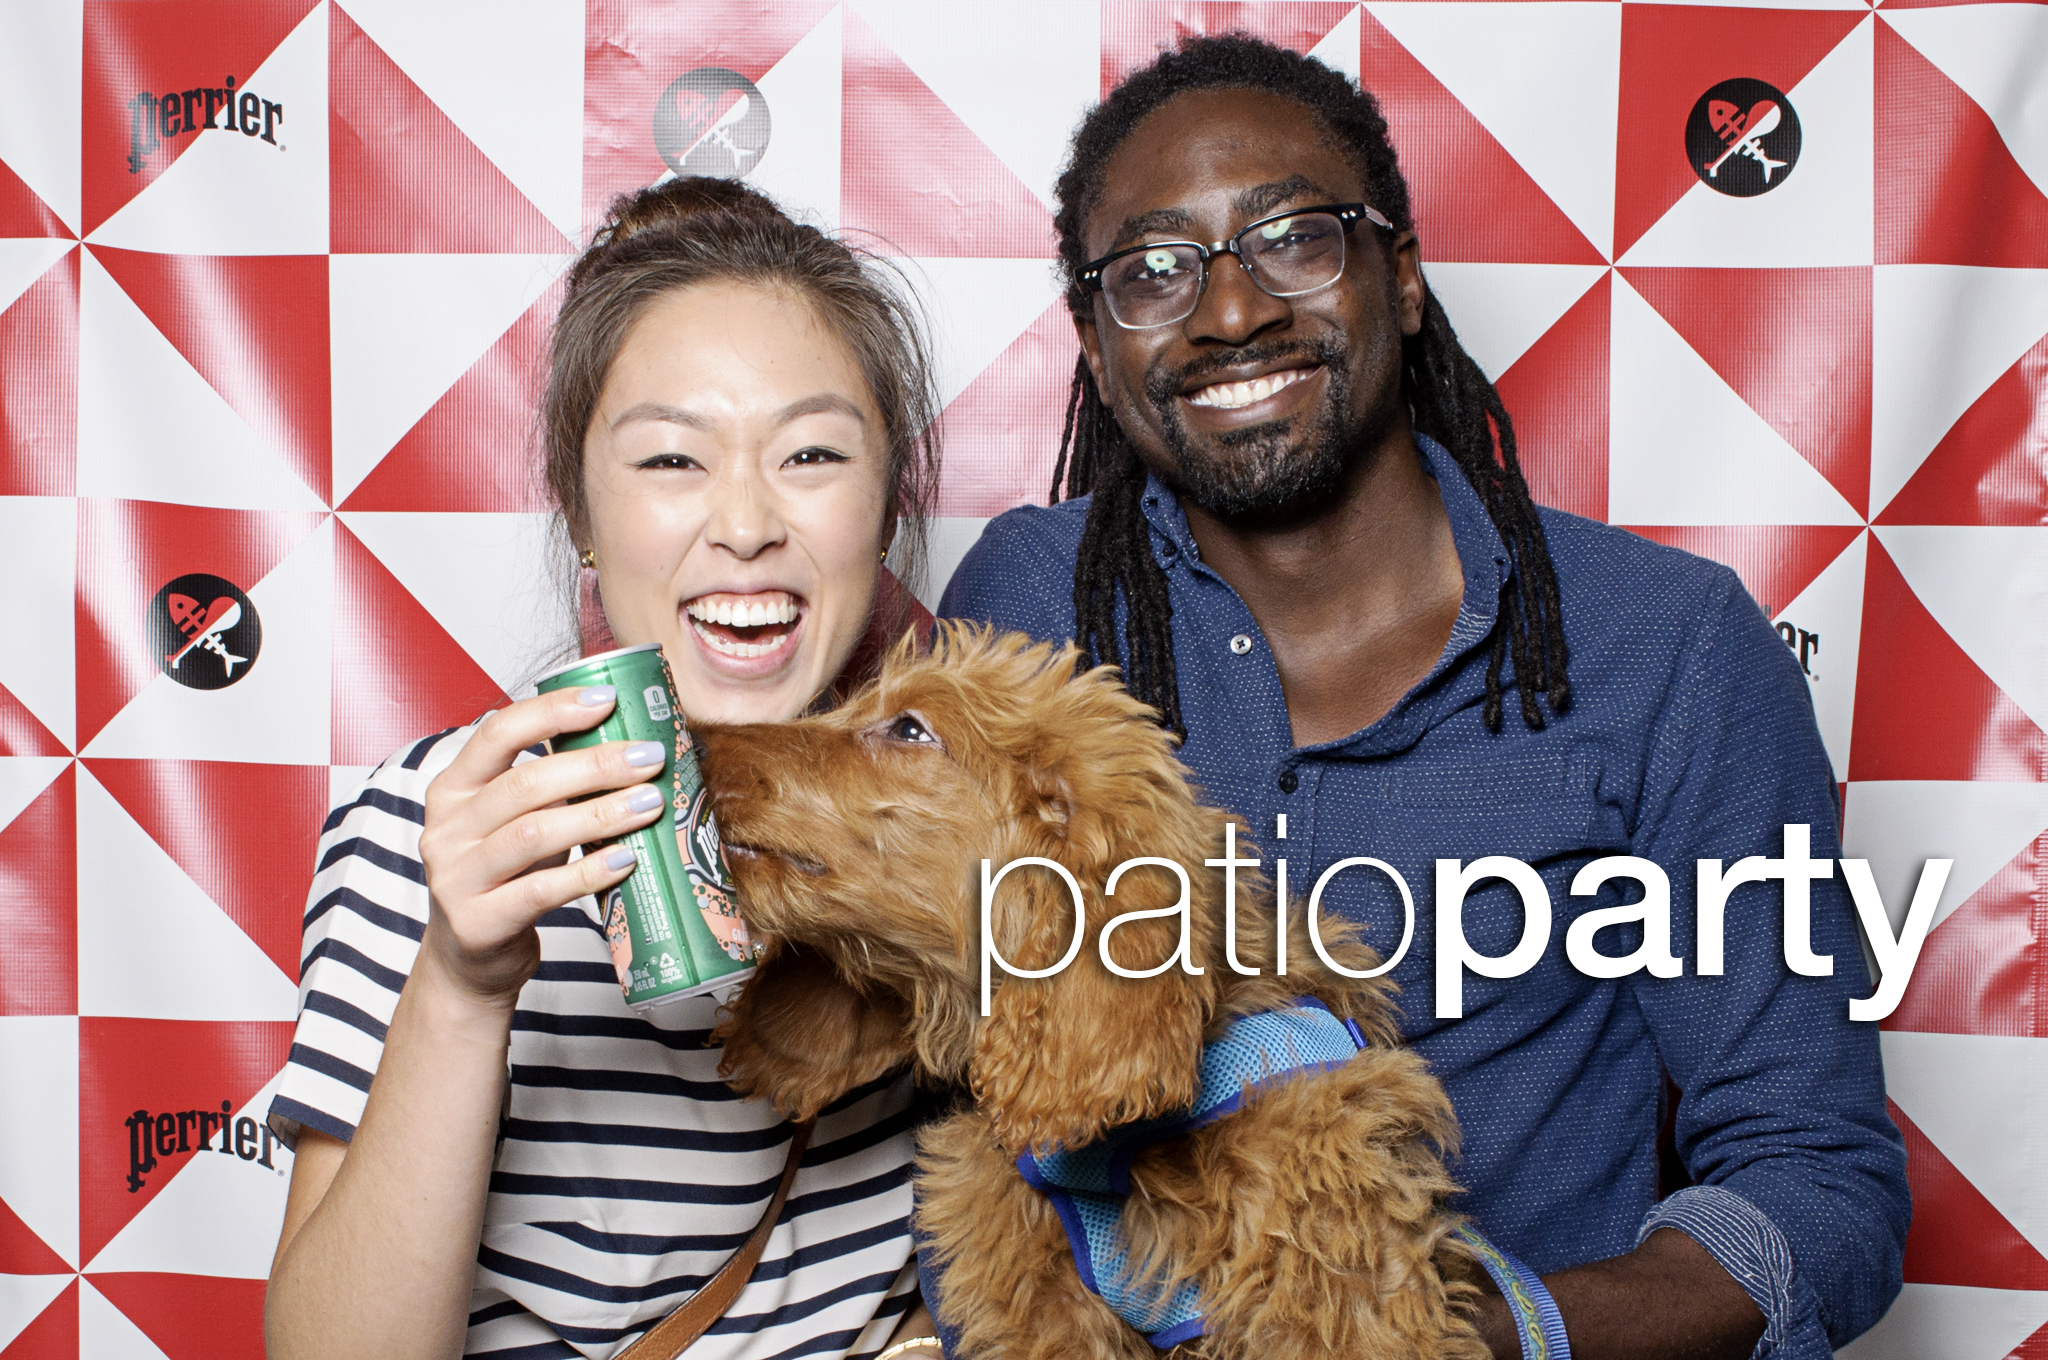 photo booth portraits from perrier and parsons final summer patio party, september 2016